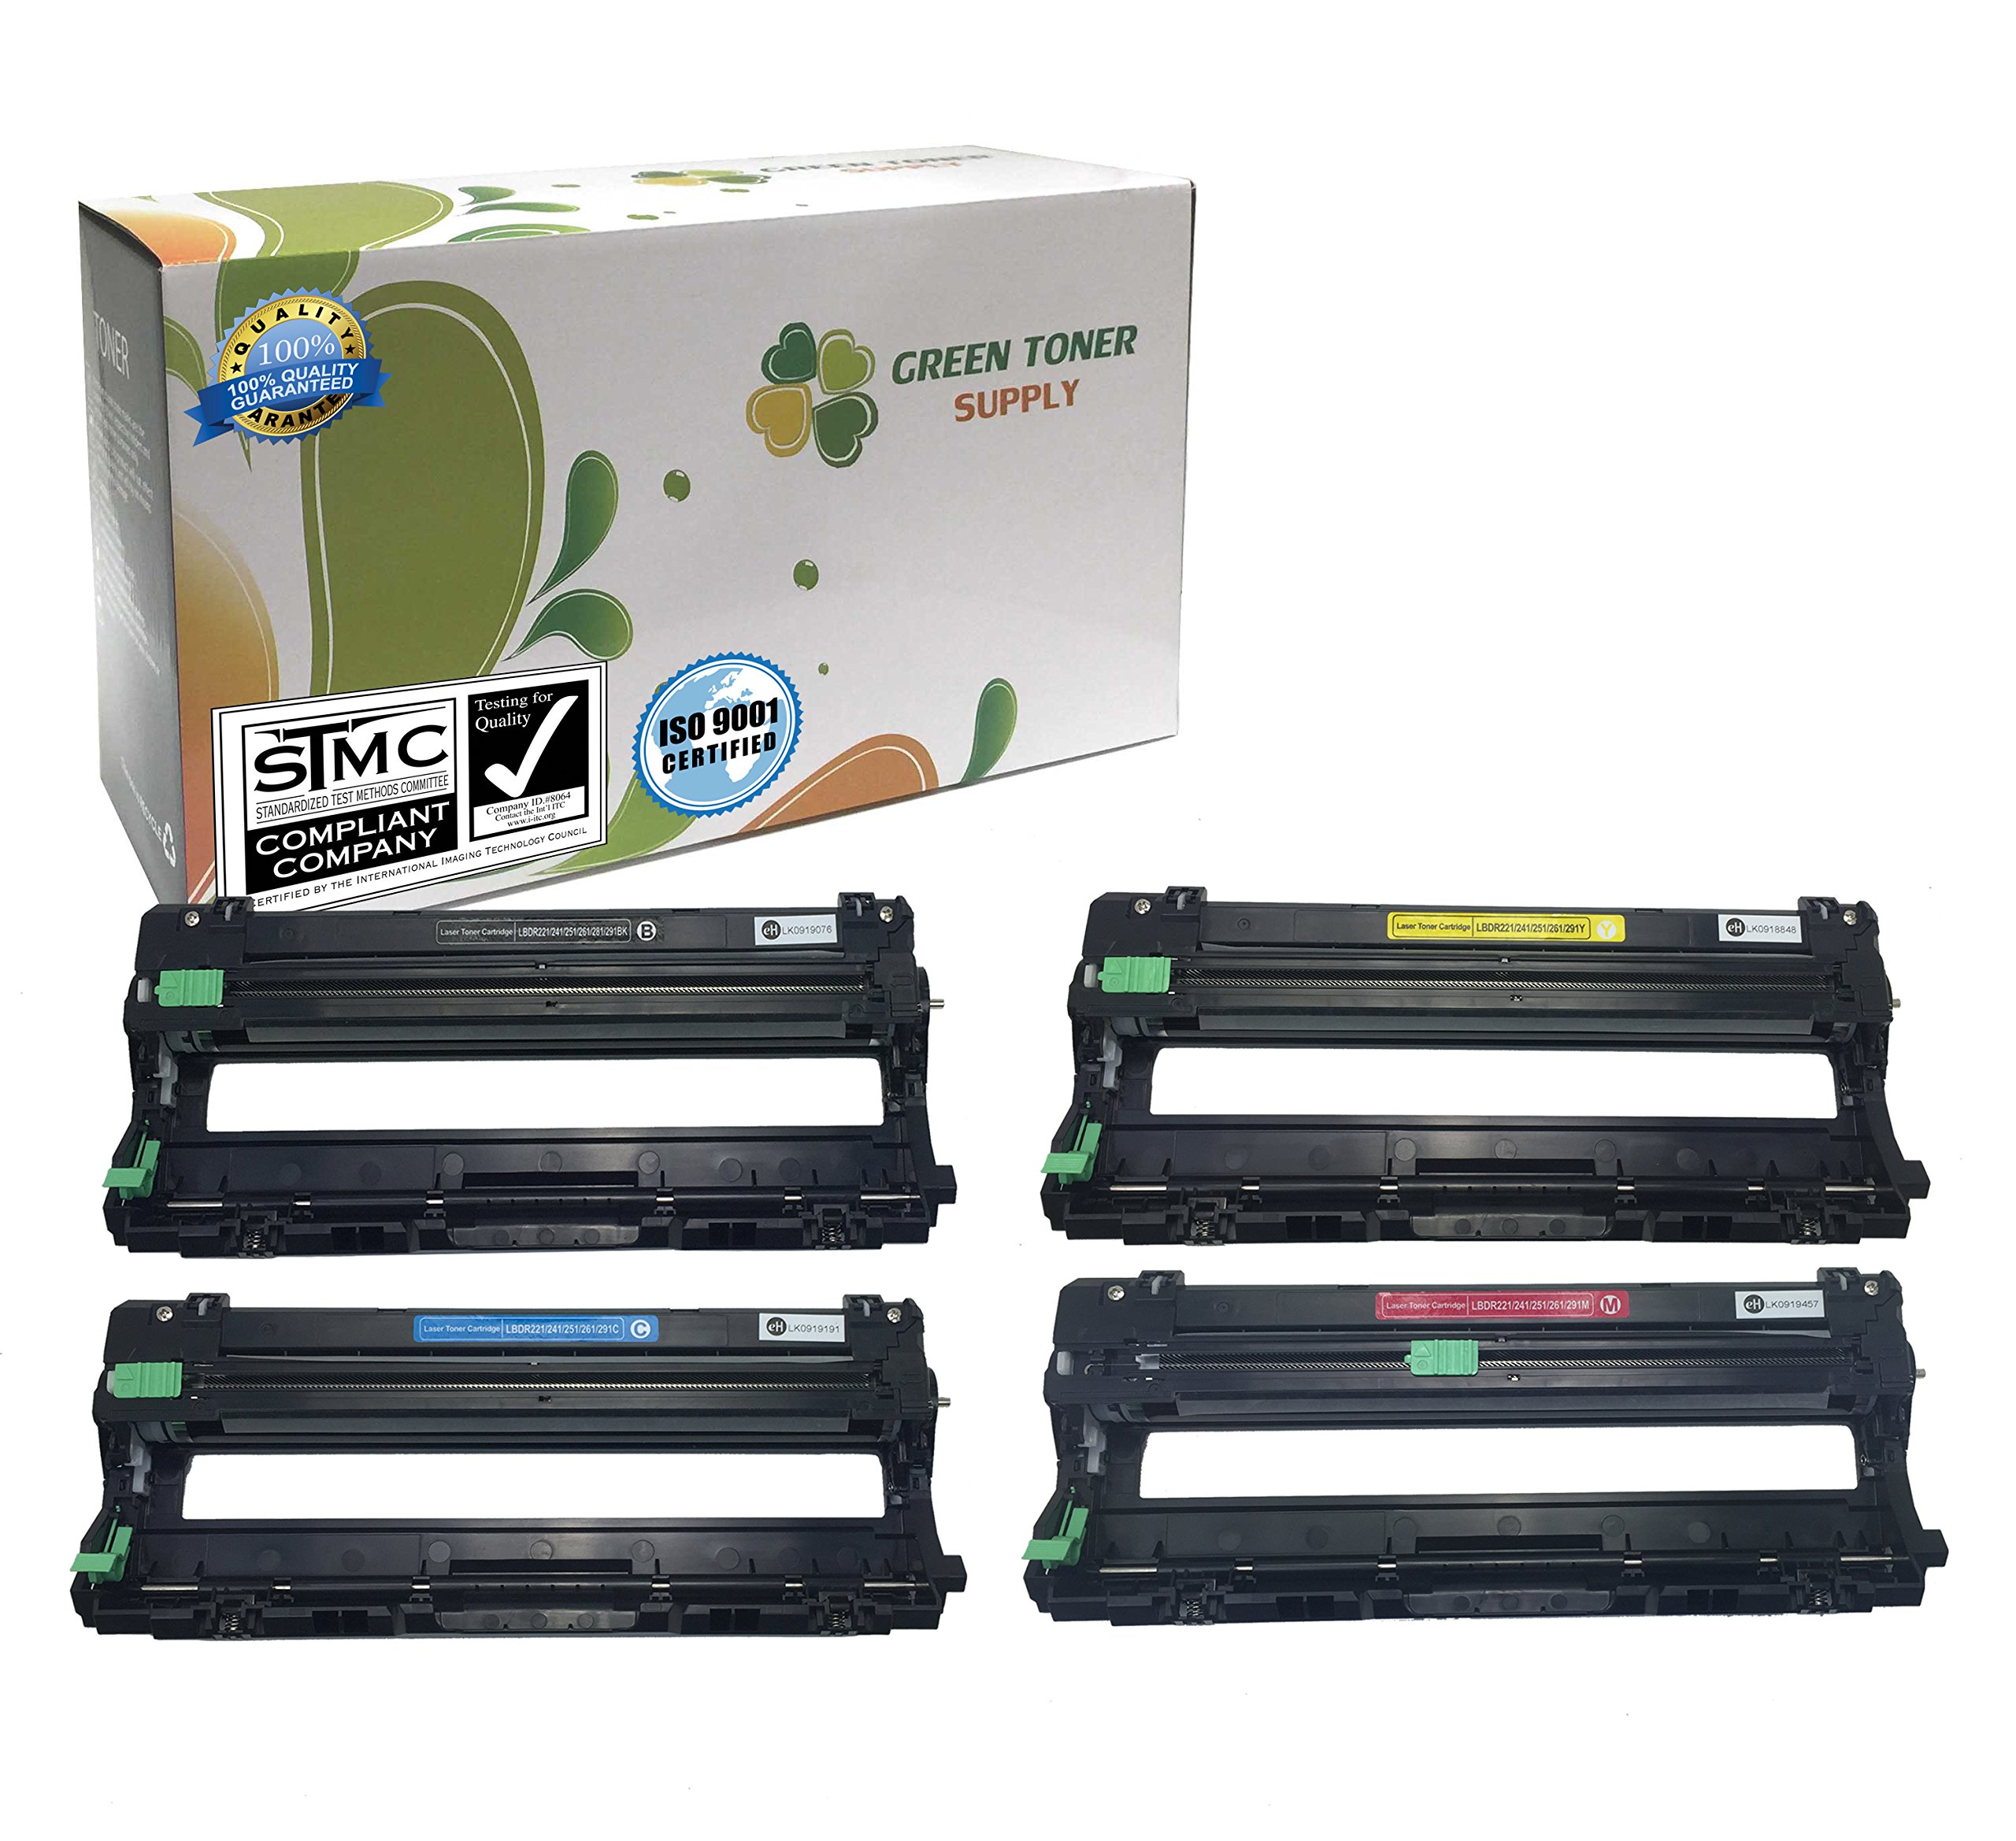 Green Toner Supply (TM) New Compatible [Brother DR221CL] 1 Black, 1 Cyan, 1 Yellow, 1 Magenta LaserJet Imaging Drum Cartridges